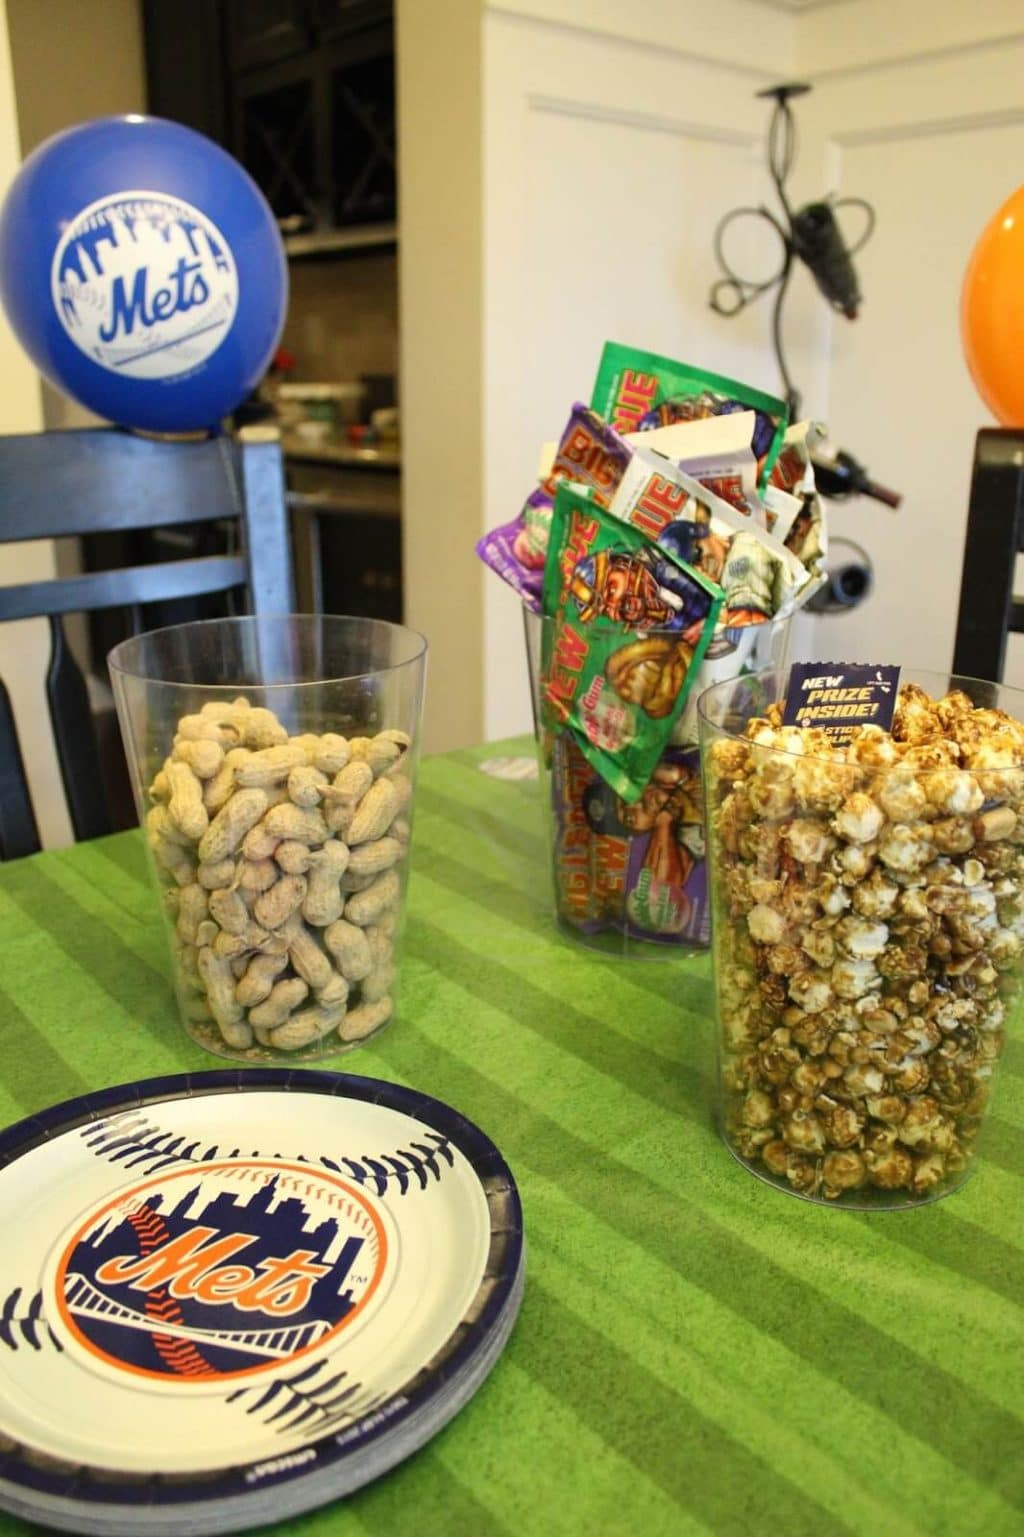 Take me out to the ballgame Baseball party, cracker jacks, big league chew, mets